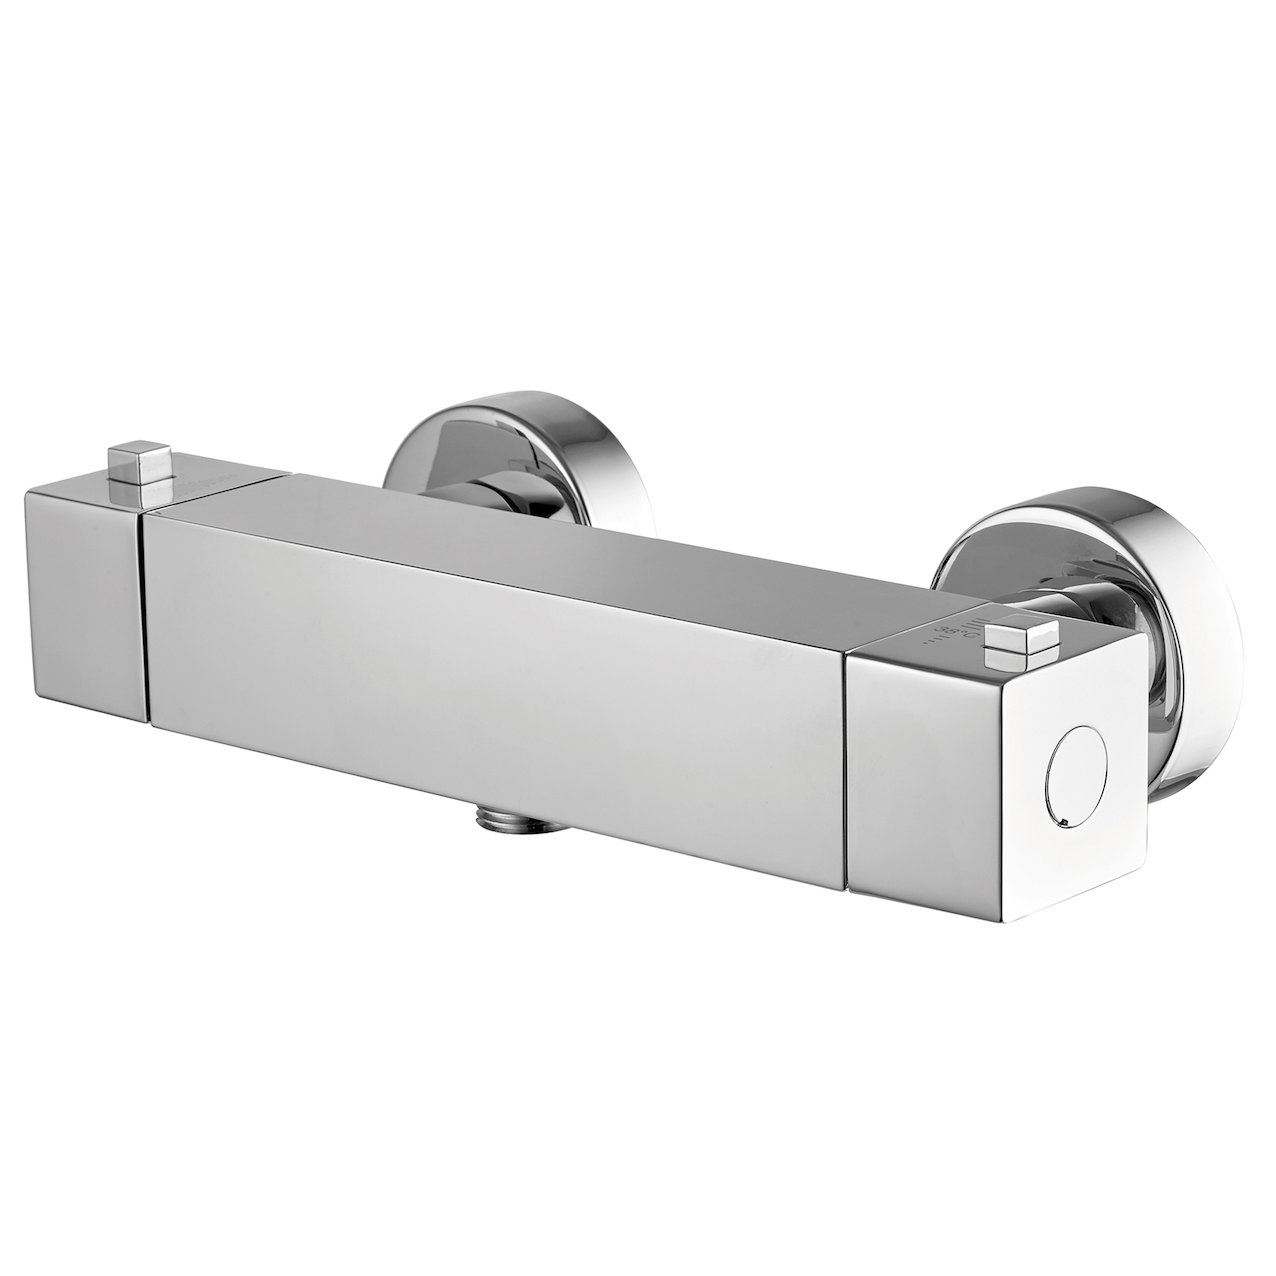 Thermostatic shower mixer Quadra